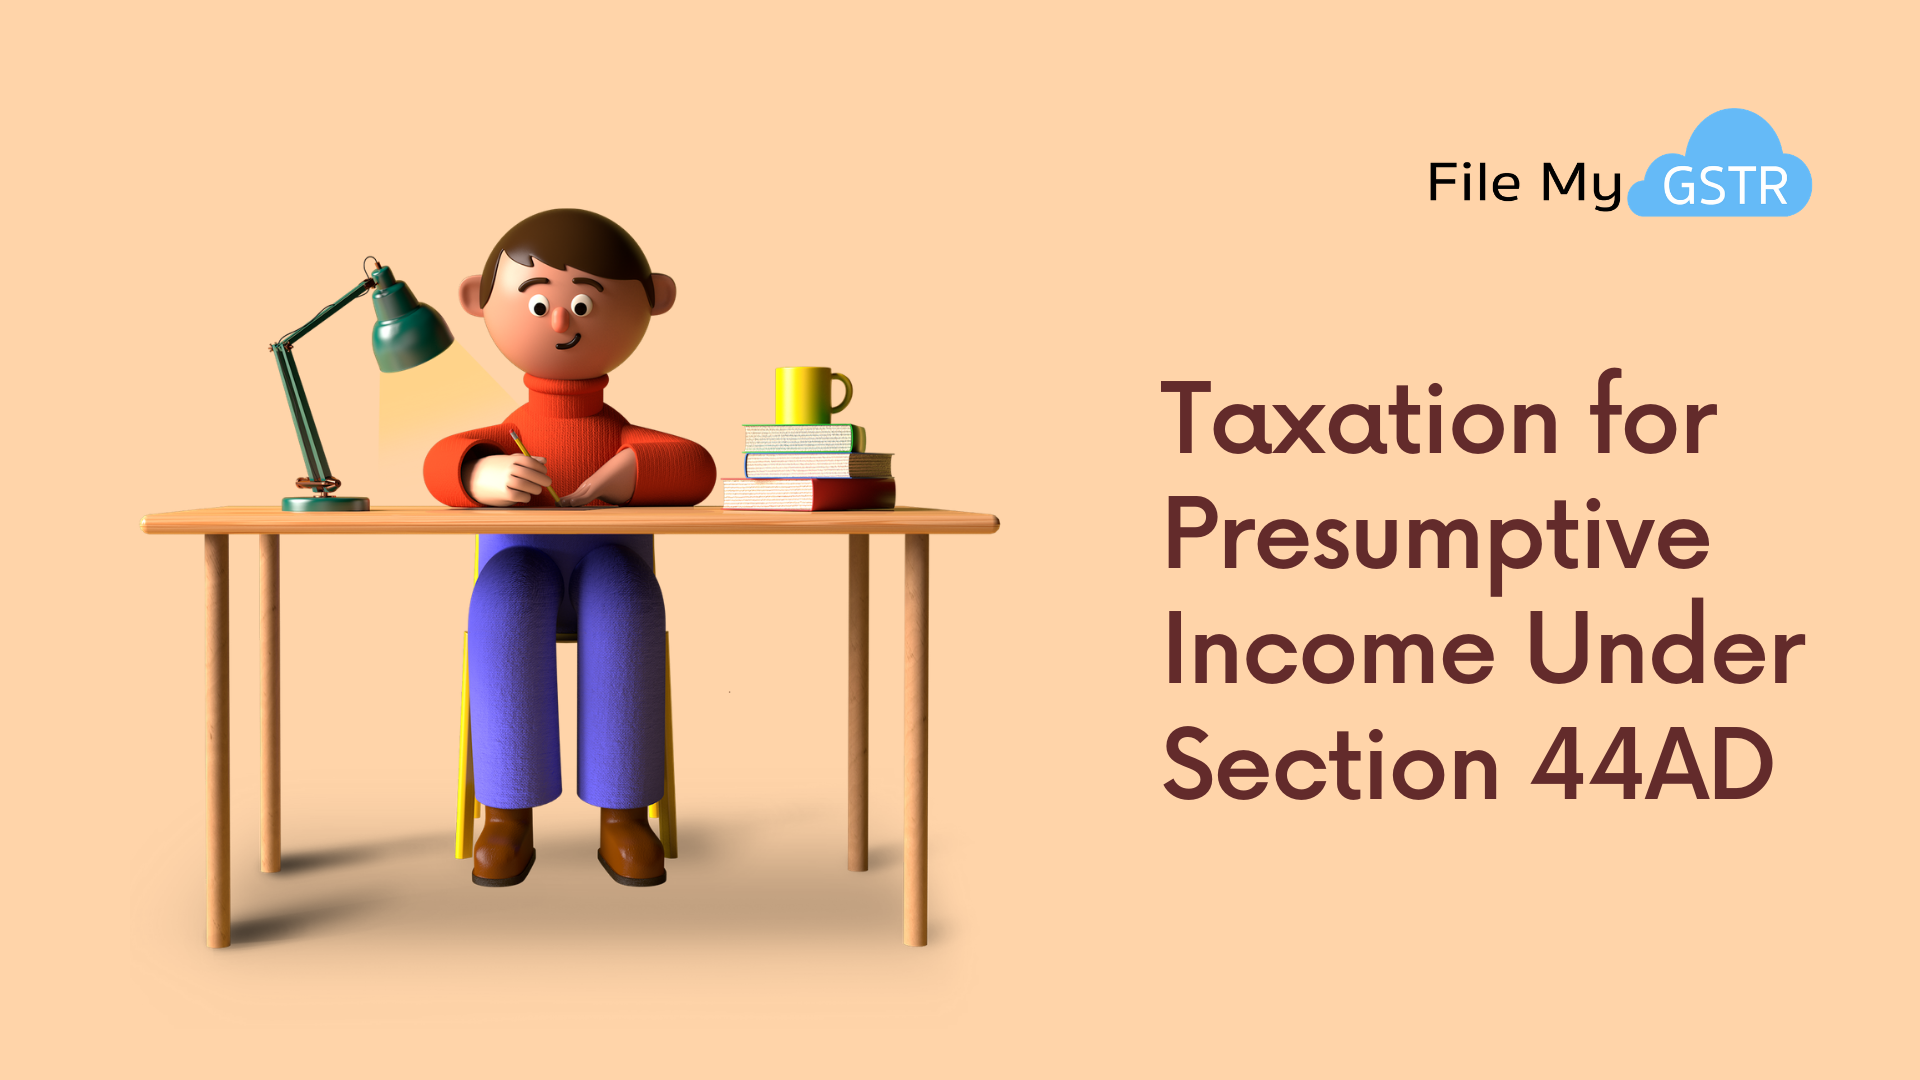 Taxation for Presumptive Income Under Section 44AD